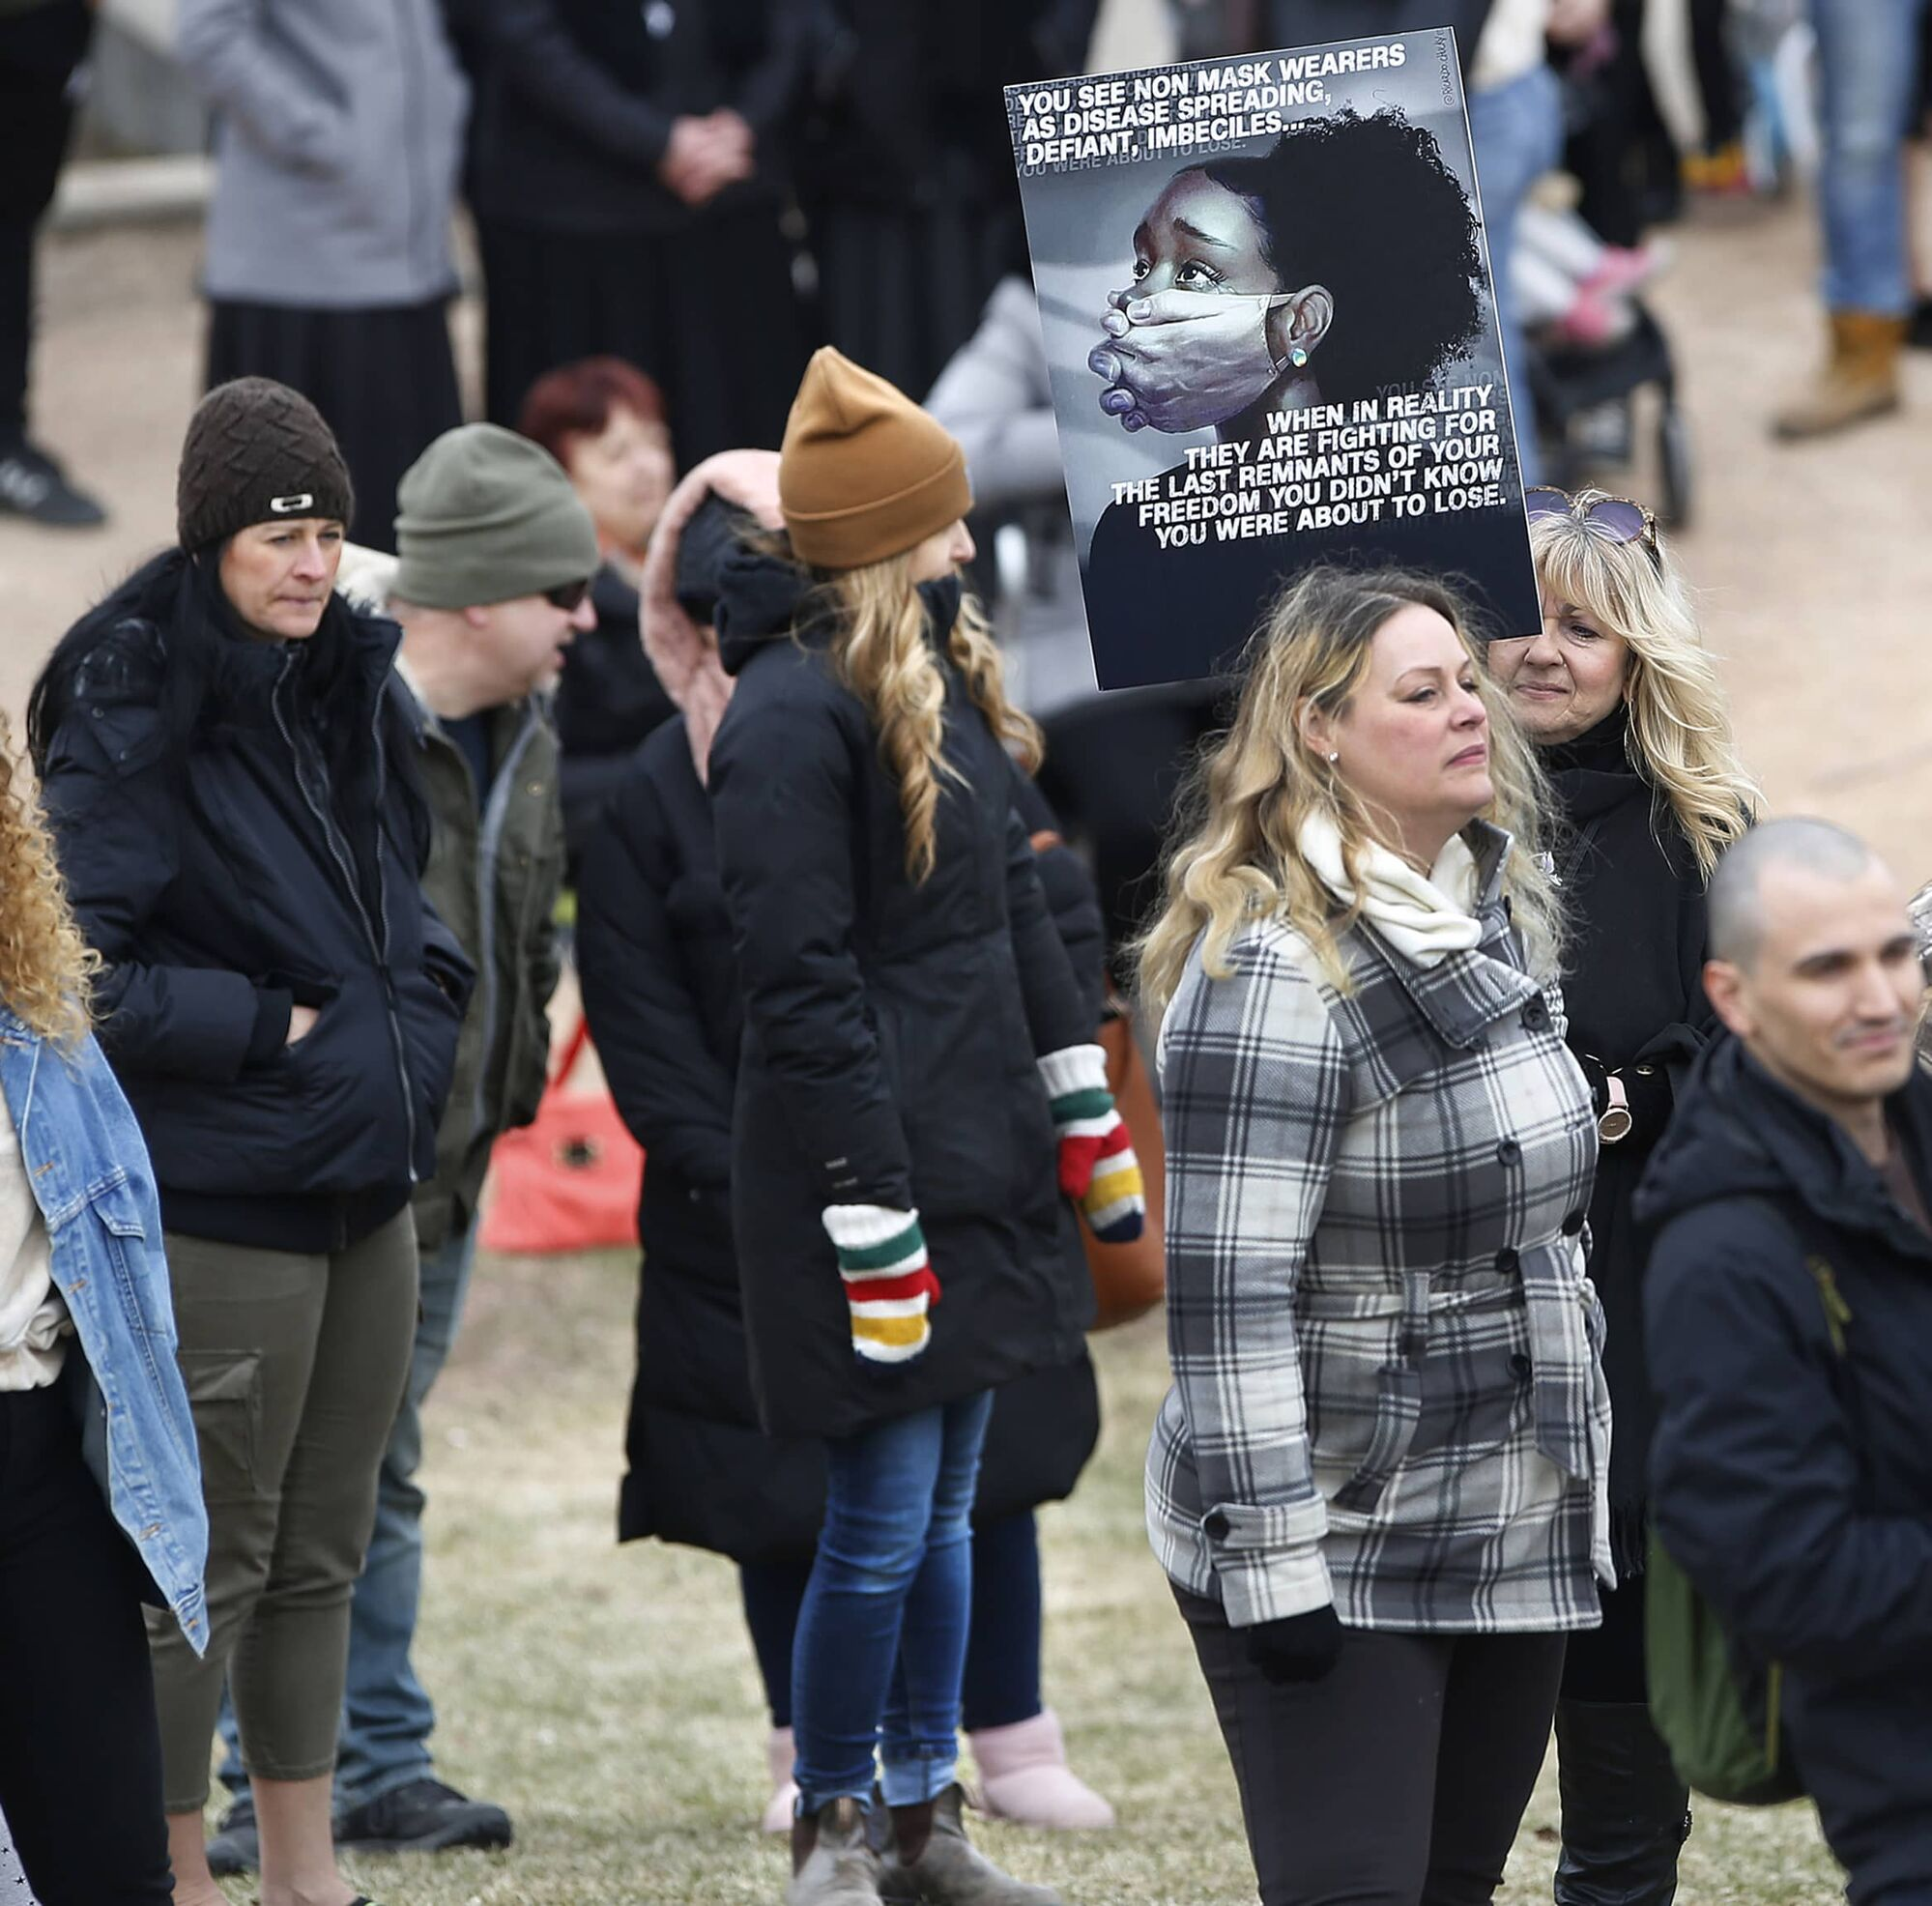 Hollie Buhler, seen at the rally in brown toque and striped mitts, who teaches Grade 1 at Elmwood School in Altona, has been suspended for attending the anti-mask rally in Winnipeg Sunday.  Parents raised concerns after seeing the photo that she might expose their children to COVID-19.